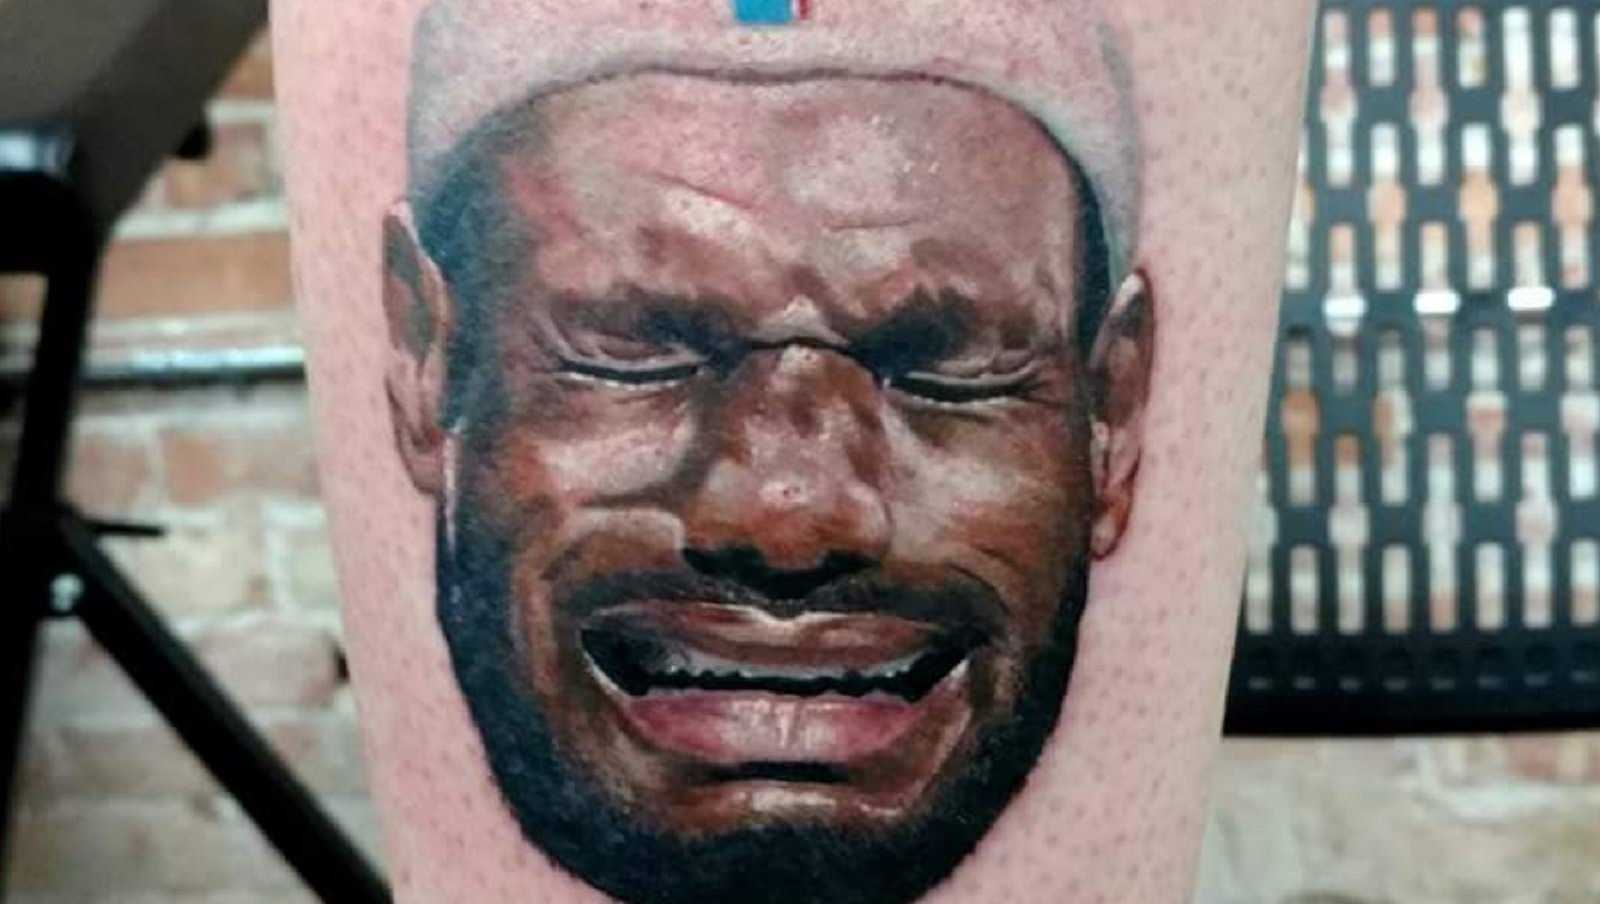 Kalen Gilleese, took his disdain for LeBron James to the next level by tattooing LeBron's crying face on his leg.